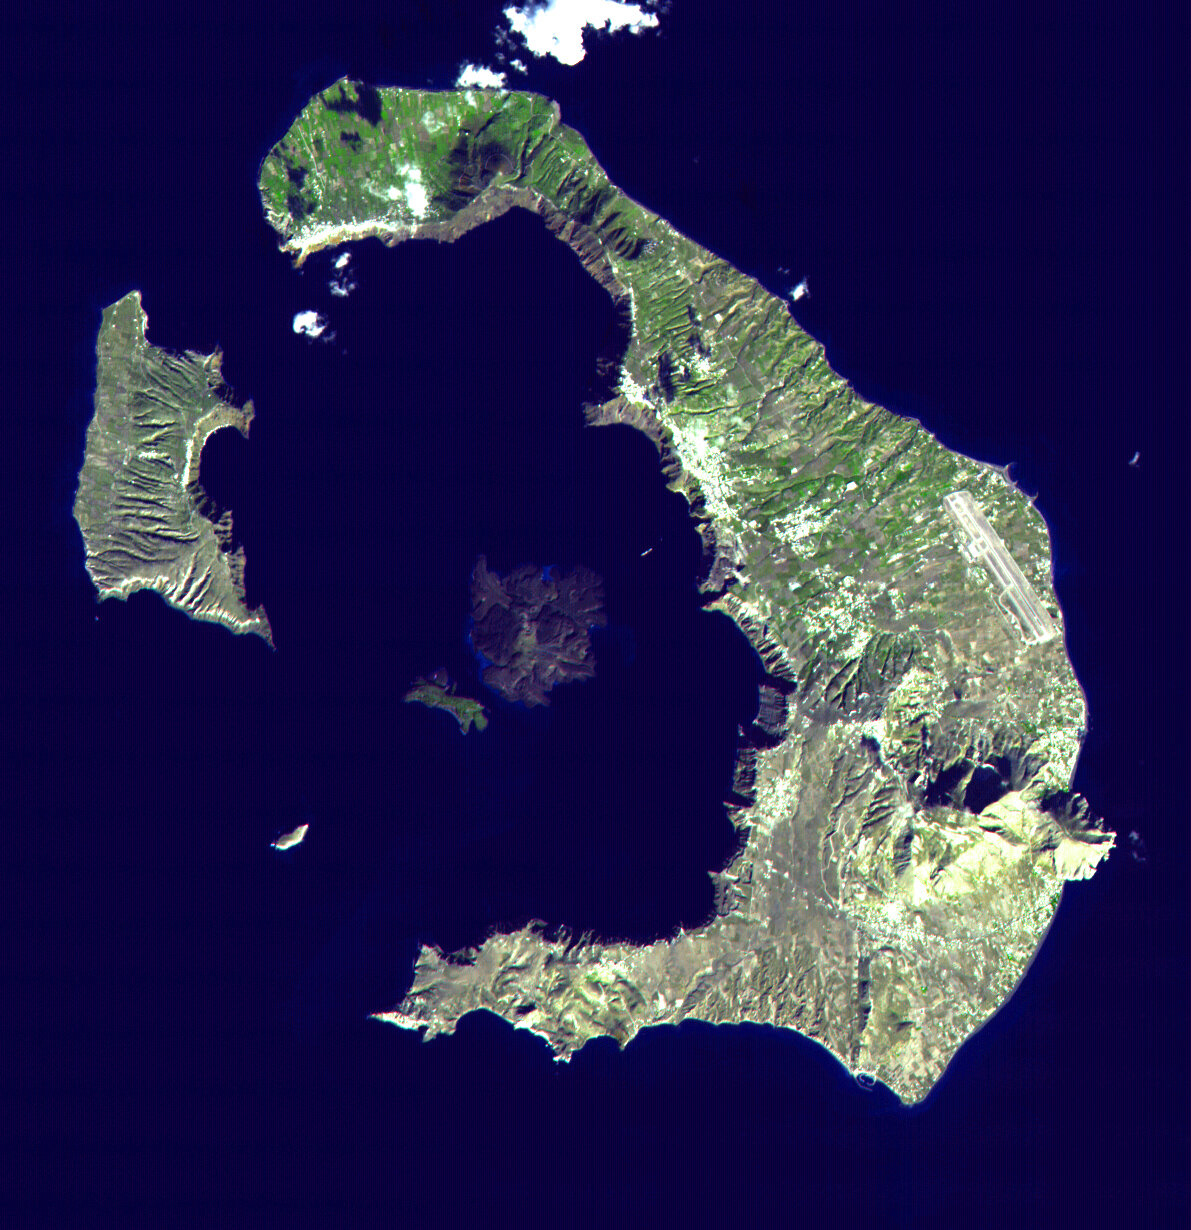 Tree rings helped determine the date of the eruption of the volcano Thira in Greece